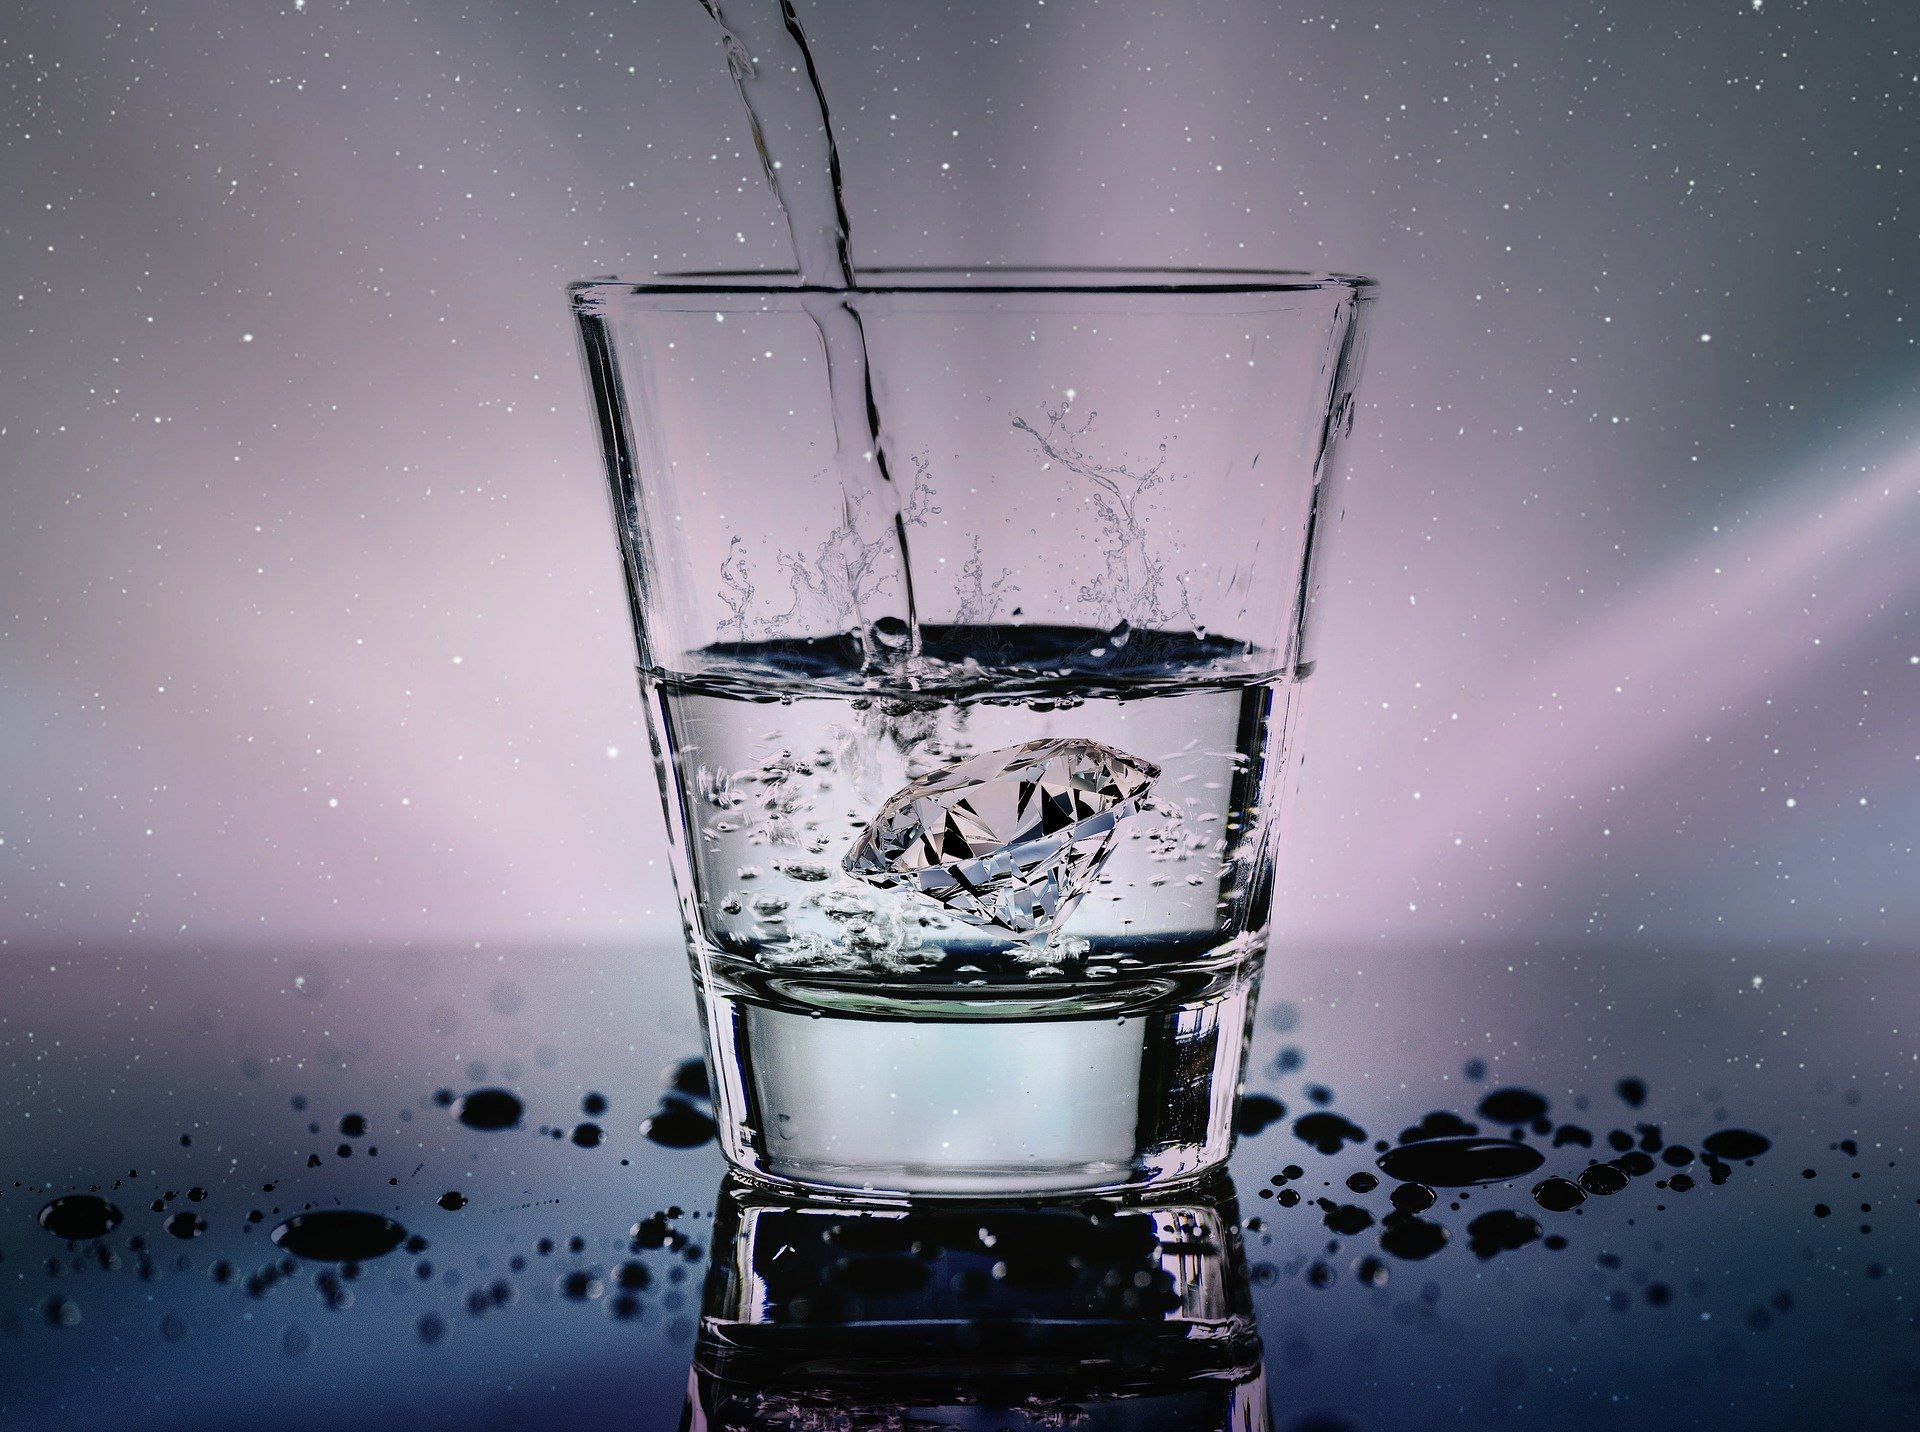 water-3853492_1920 (1)